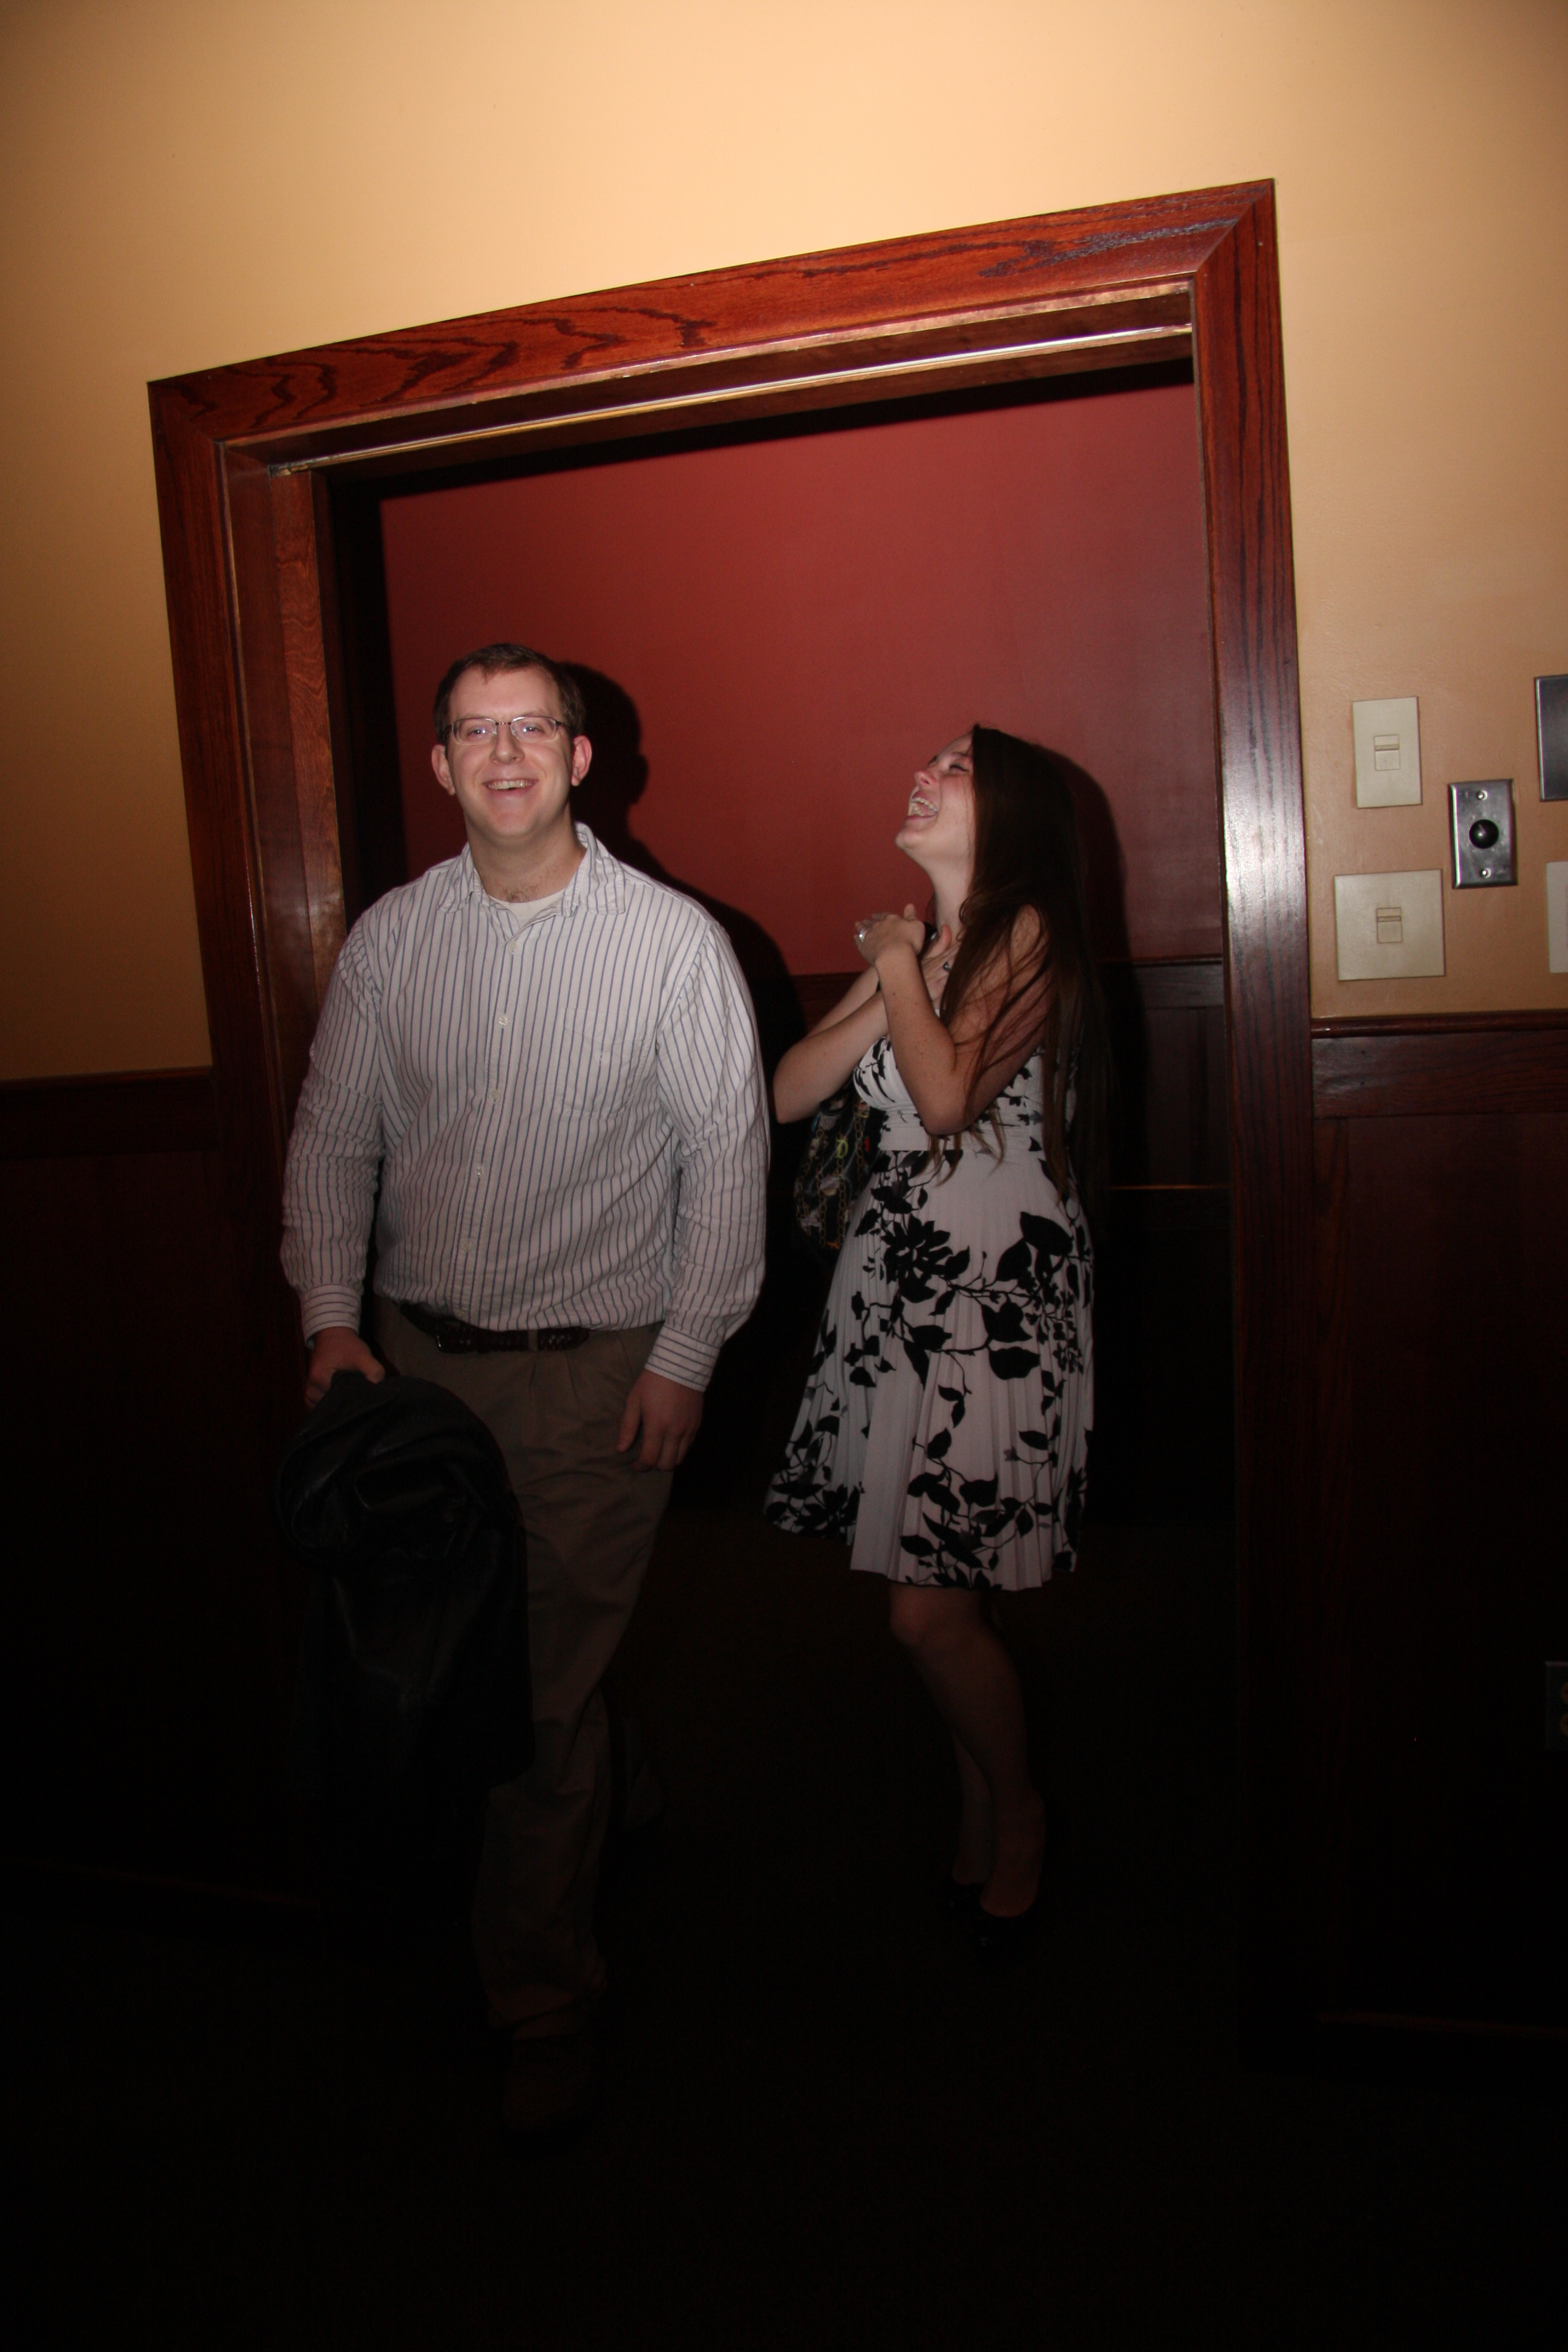 Image 3 of Christy and Jesse